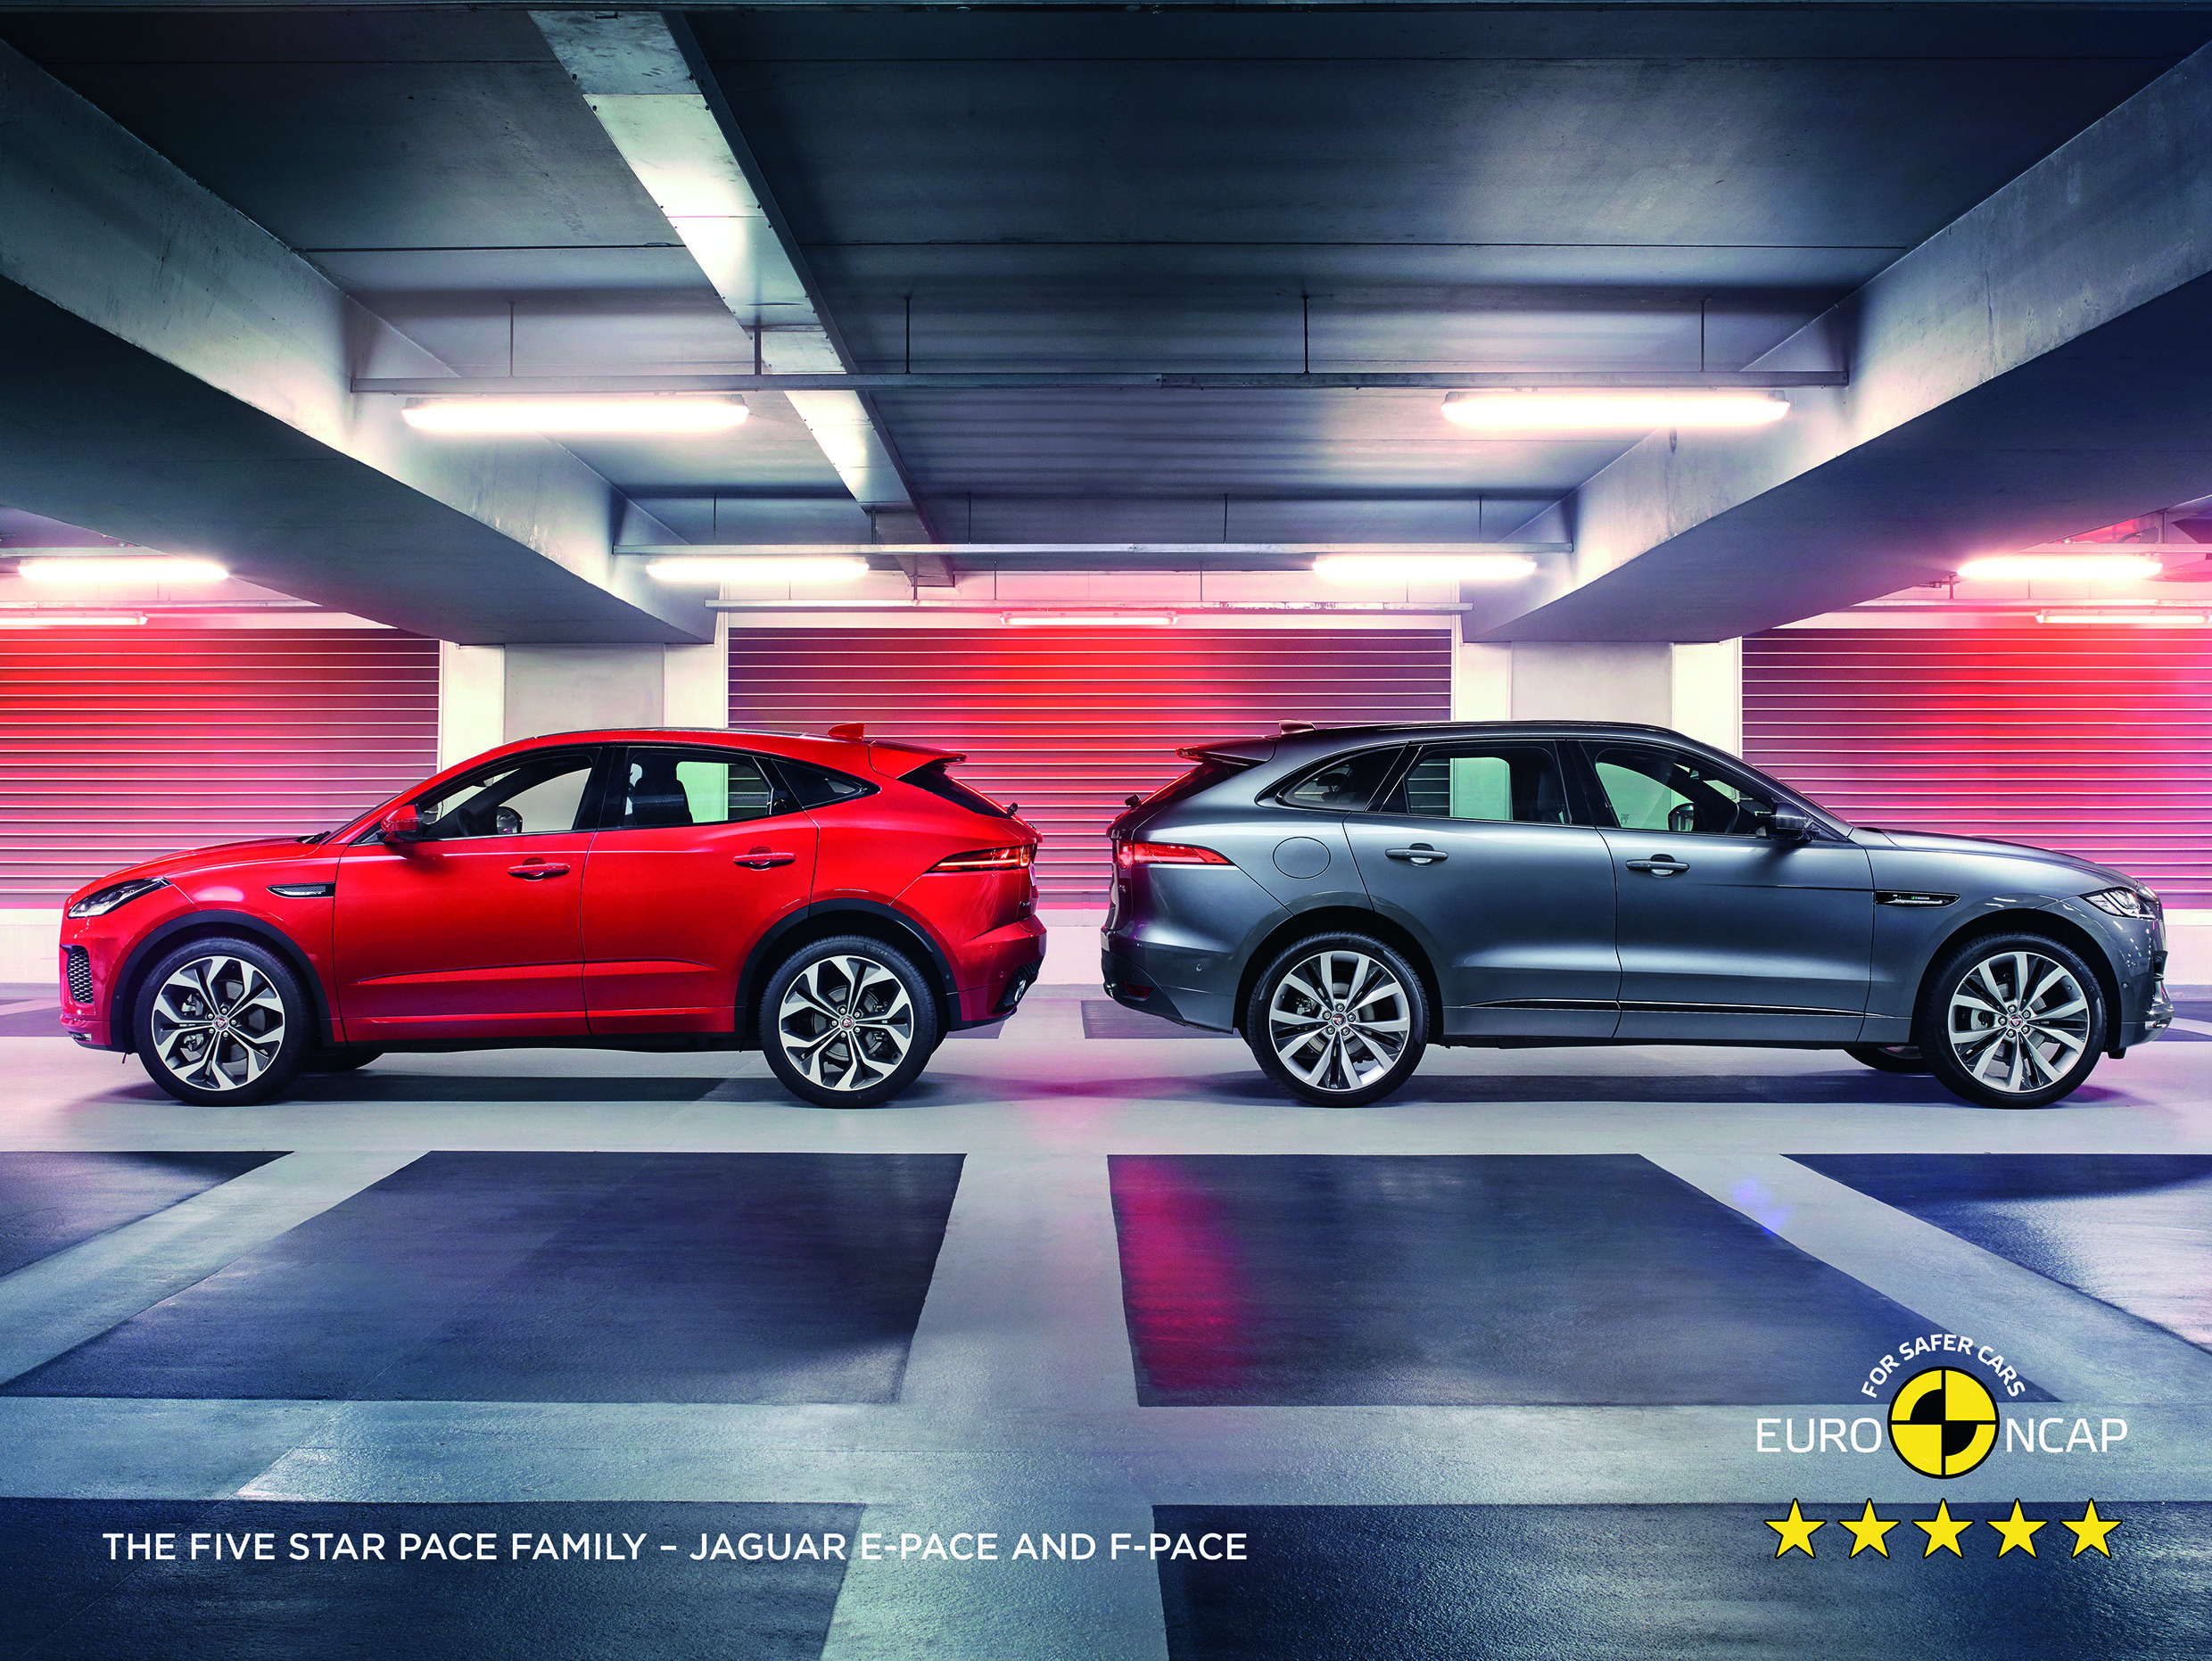 L'esclusivo mondo Jaguard e Land Rover firmato International Motors